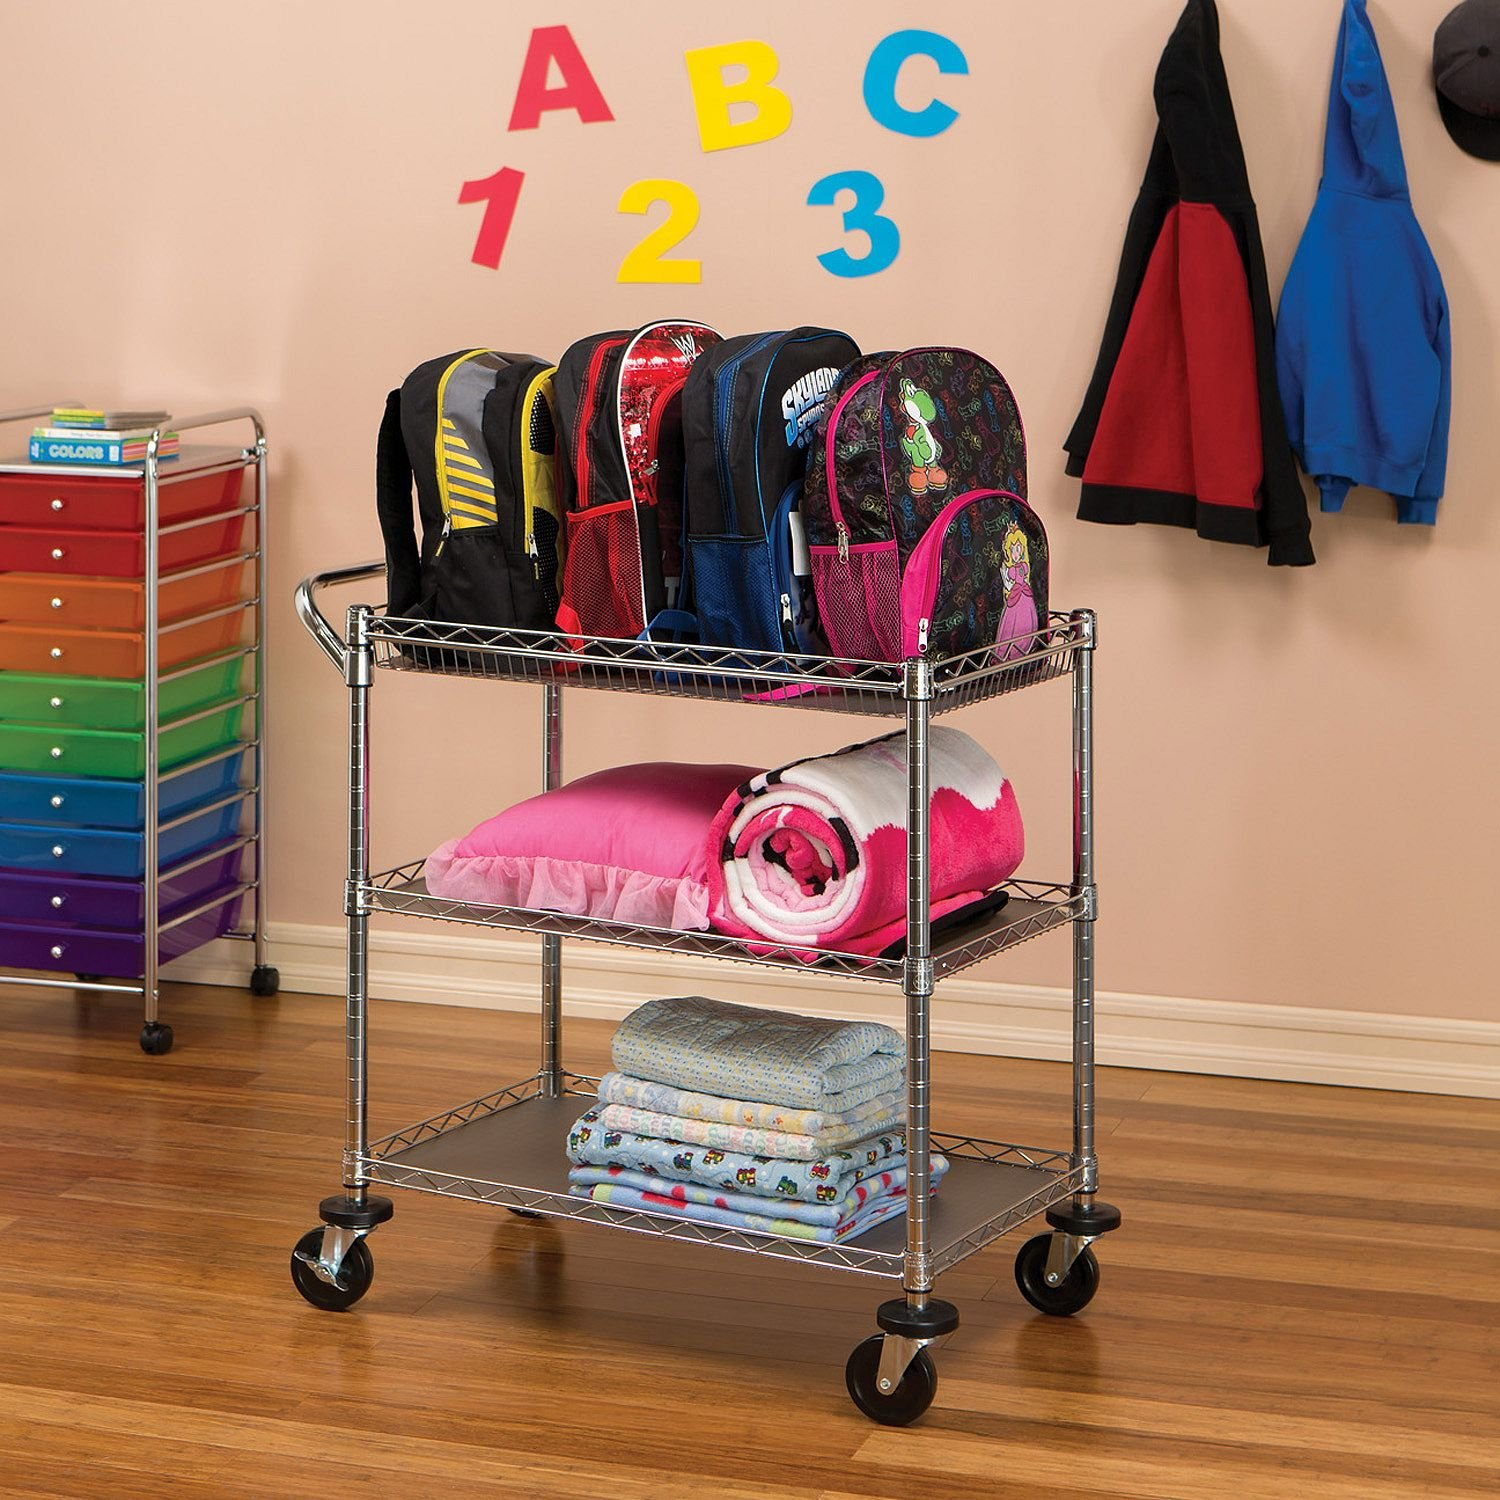 Utility Cart with Wheels Features Two Height Adjustable Shelves, Corner Bumpers and 4-Inch Caster Wheels, Zinc Plated Steel Finish, Perfect for Storage Organization in Any Rooms